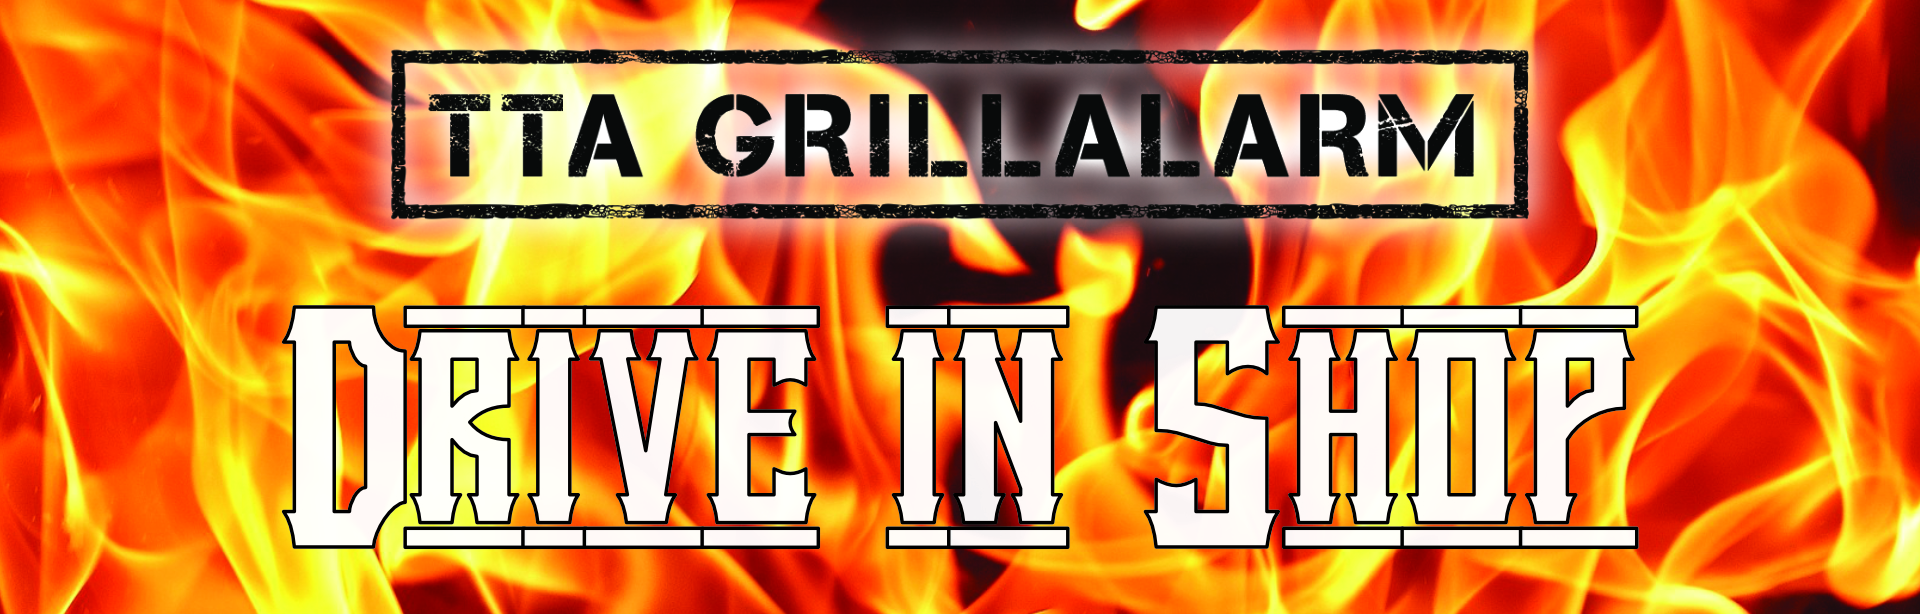 Grillalarm Banner Drive In